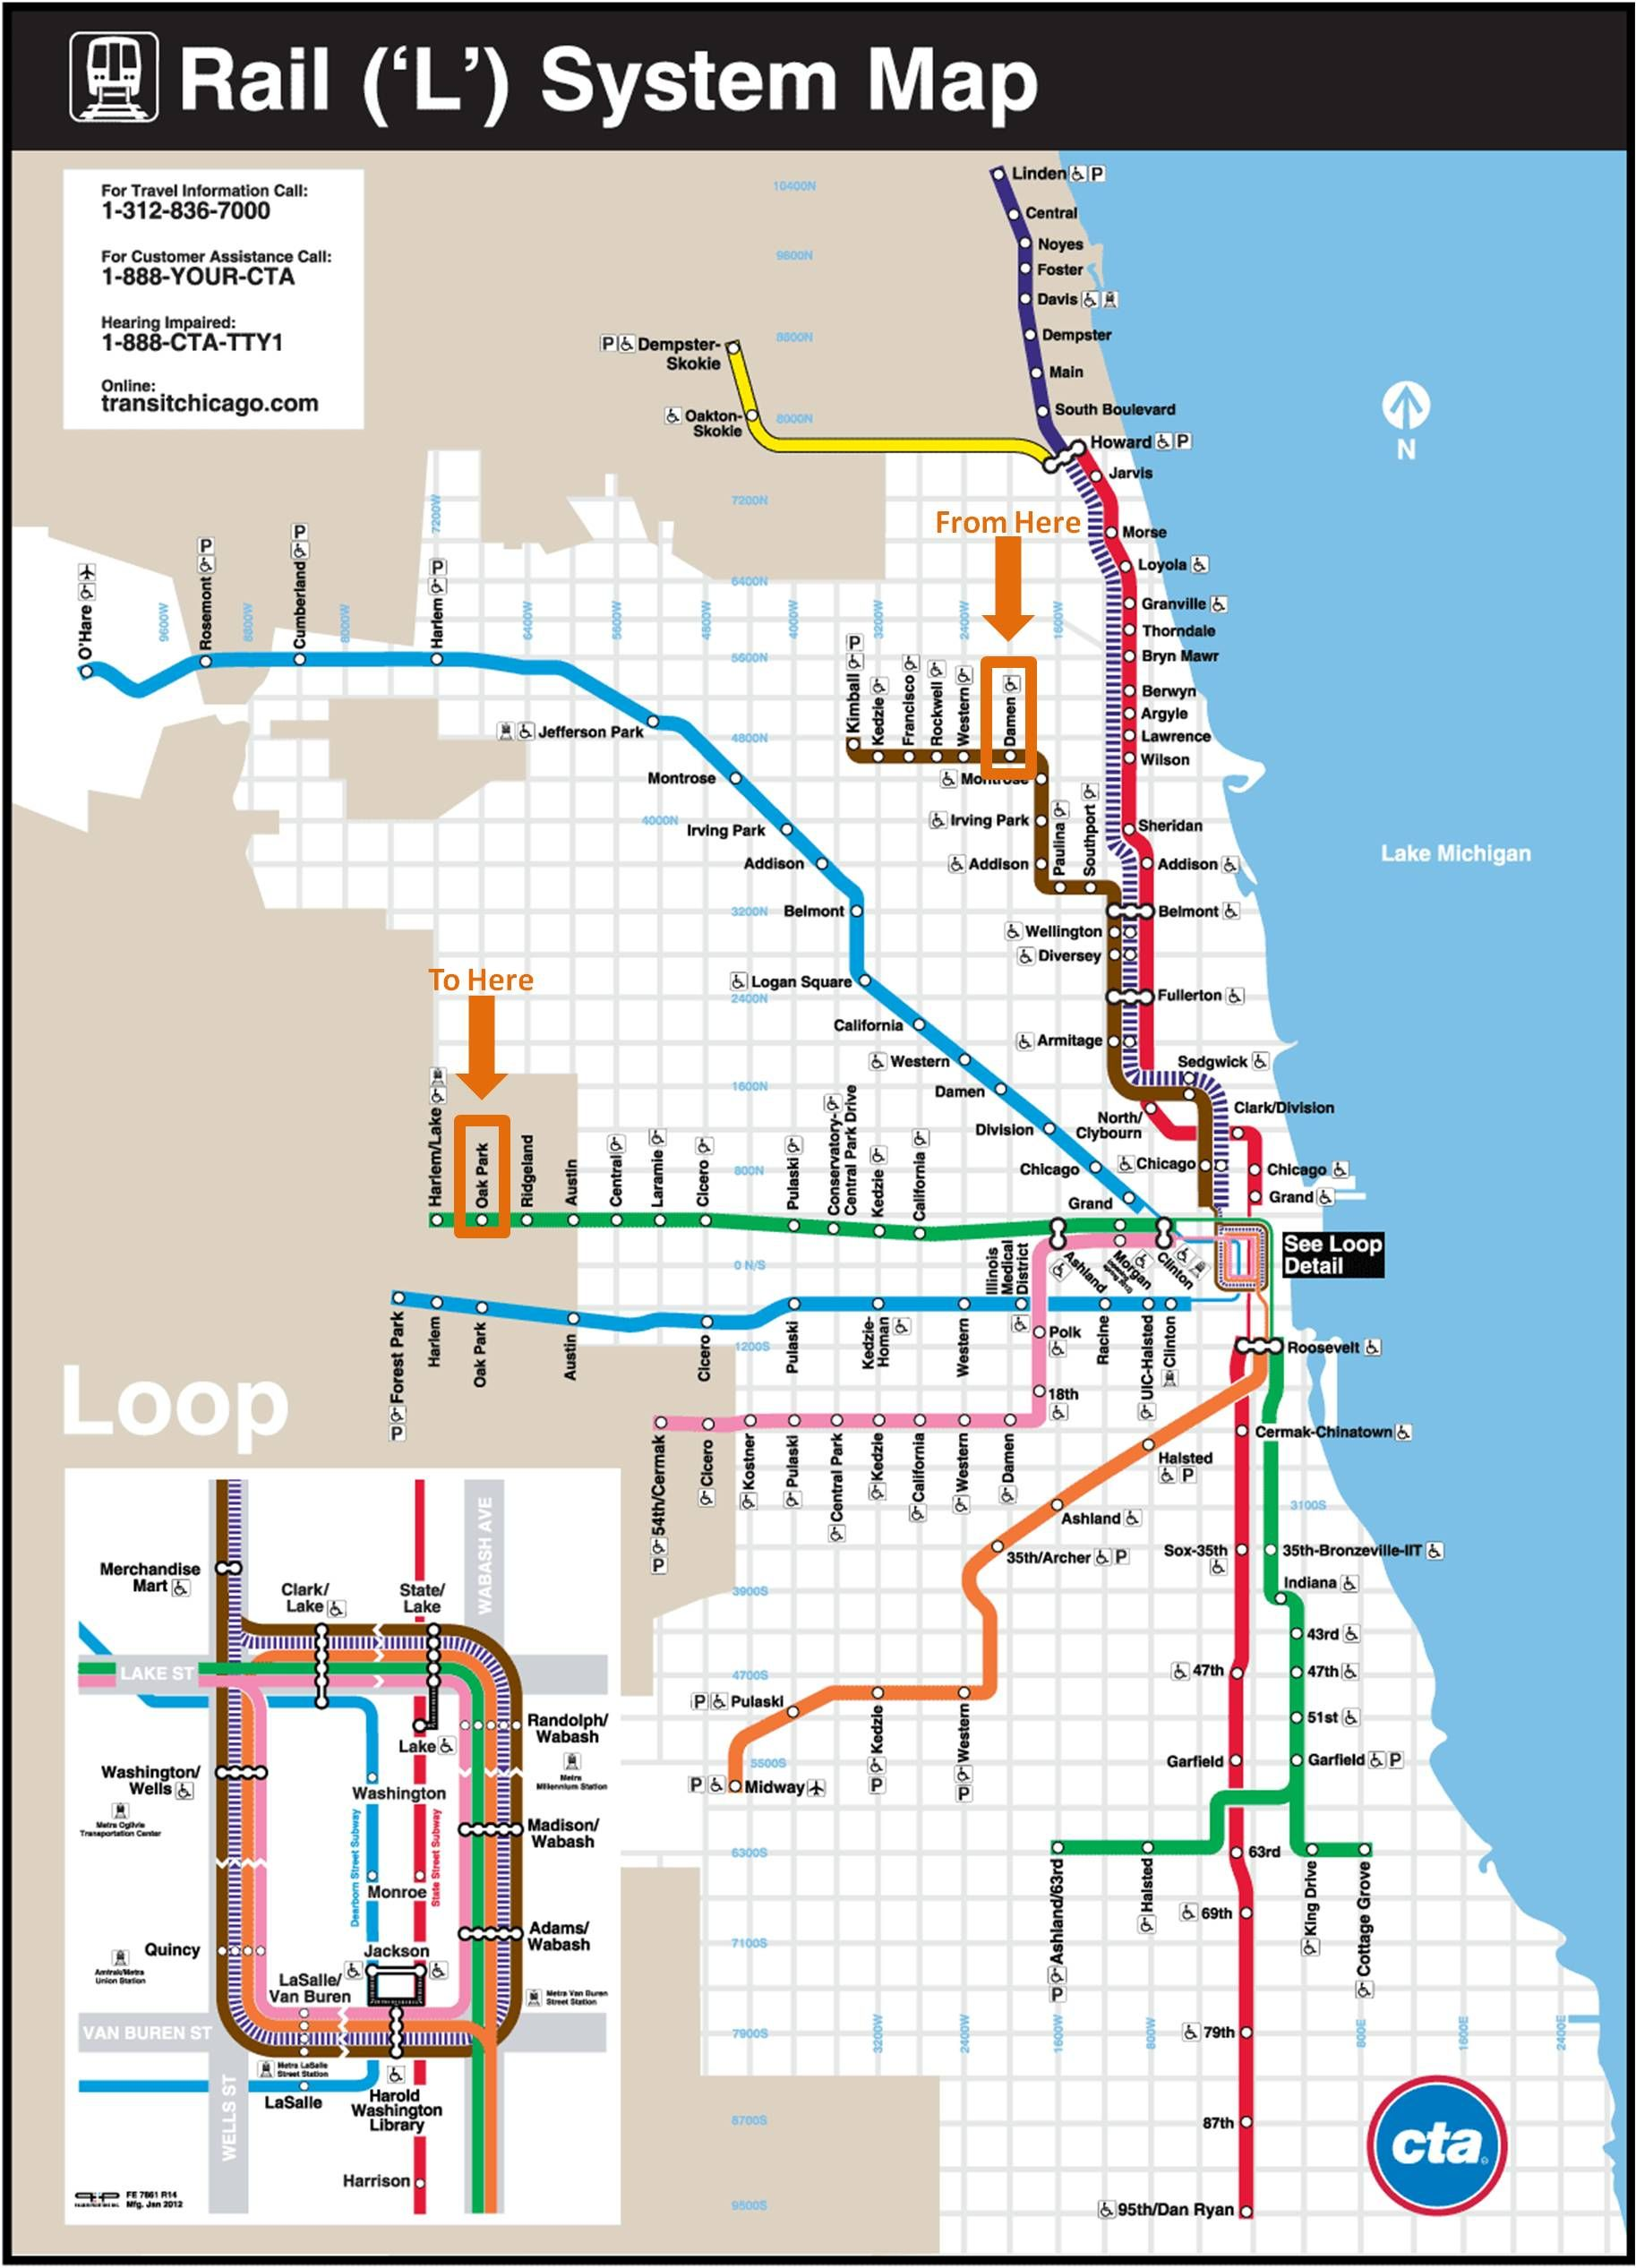 Chicago Transit Map.. Might come in handy! | Good to know in ... on green line, the loop, pink line, chicago belmont map, los angeles metro orange line map, chicago on map, downtown chicago map, red line, chicago metra map, chicago cta map, jackson/state, cta lines map, orange line, chicago logan square map, chicago california map, clark/lake, chicago elevated train map, purple line, red line map, chicago red line train routes, brown line, union station, chicago points of interest map, chicago area school district map, chicago world's fair map, pink line map, chicago city map, chicago zip map, chicago neighborhood map, forest park, chicago transit authority, yellow line,